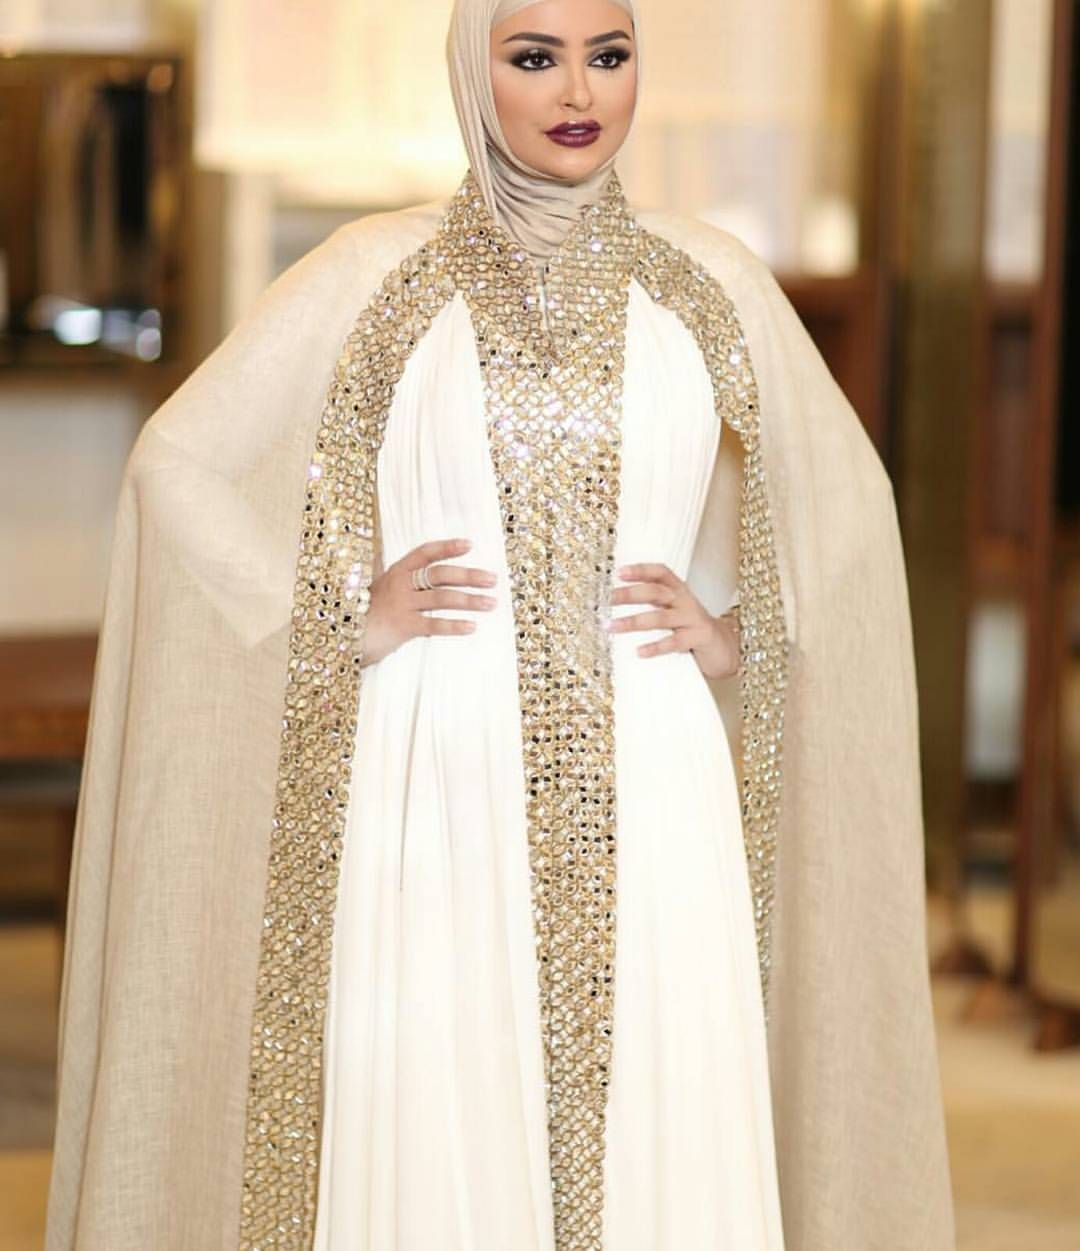 21 likes 2 comments muslims in fashion